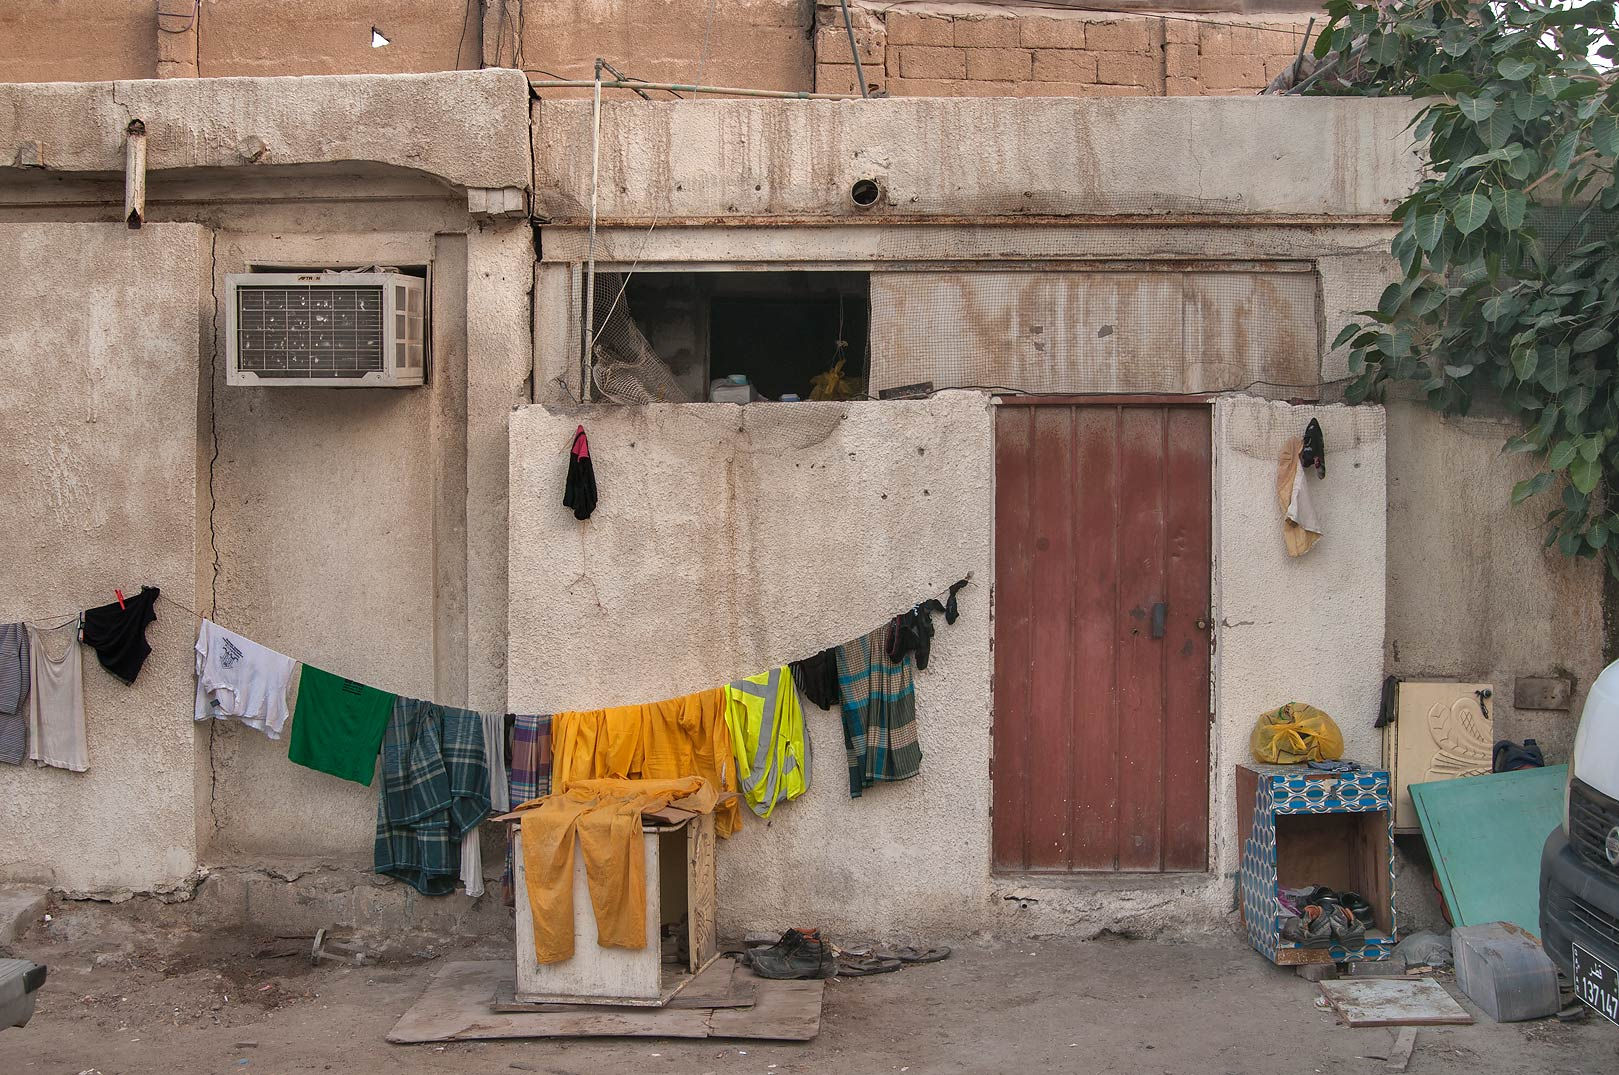 Laundry at Umm Wishah St., Musheirib area. Doha, Qatar